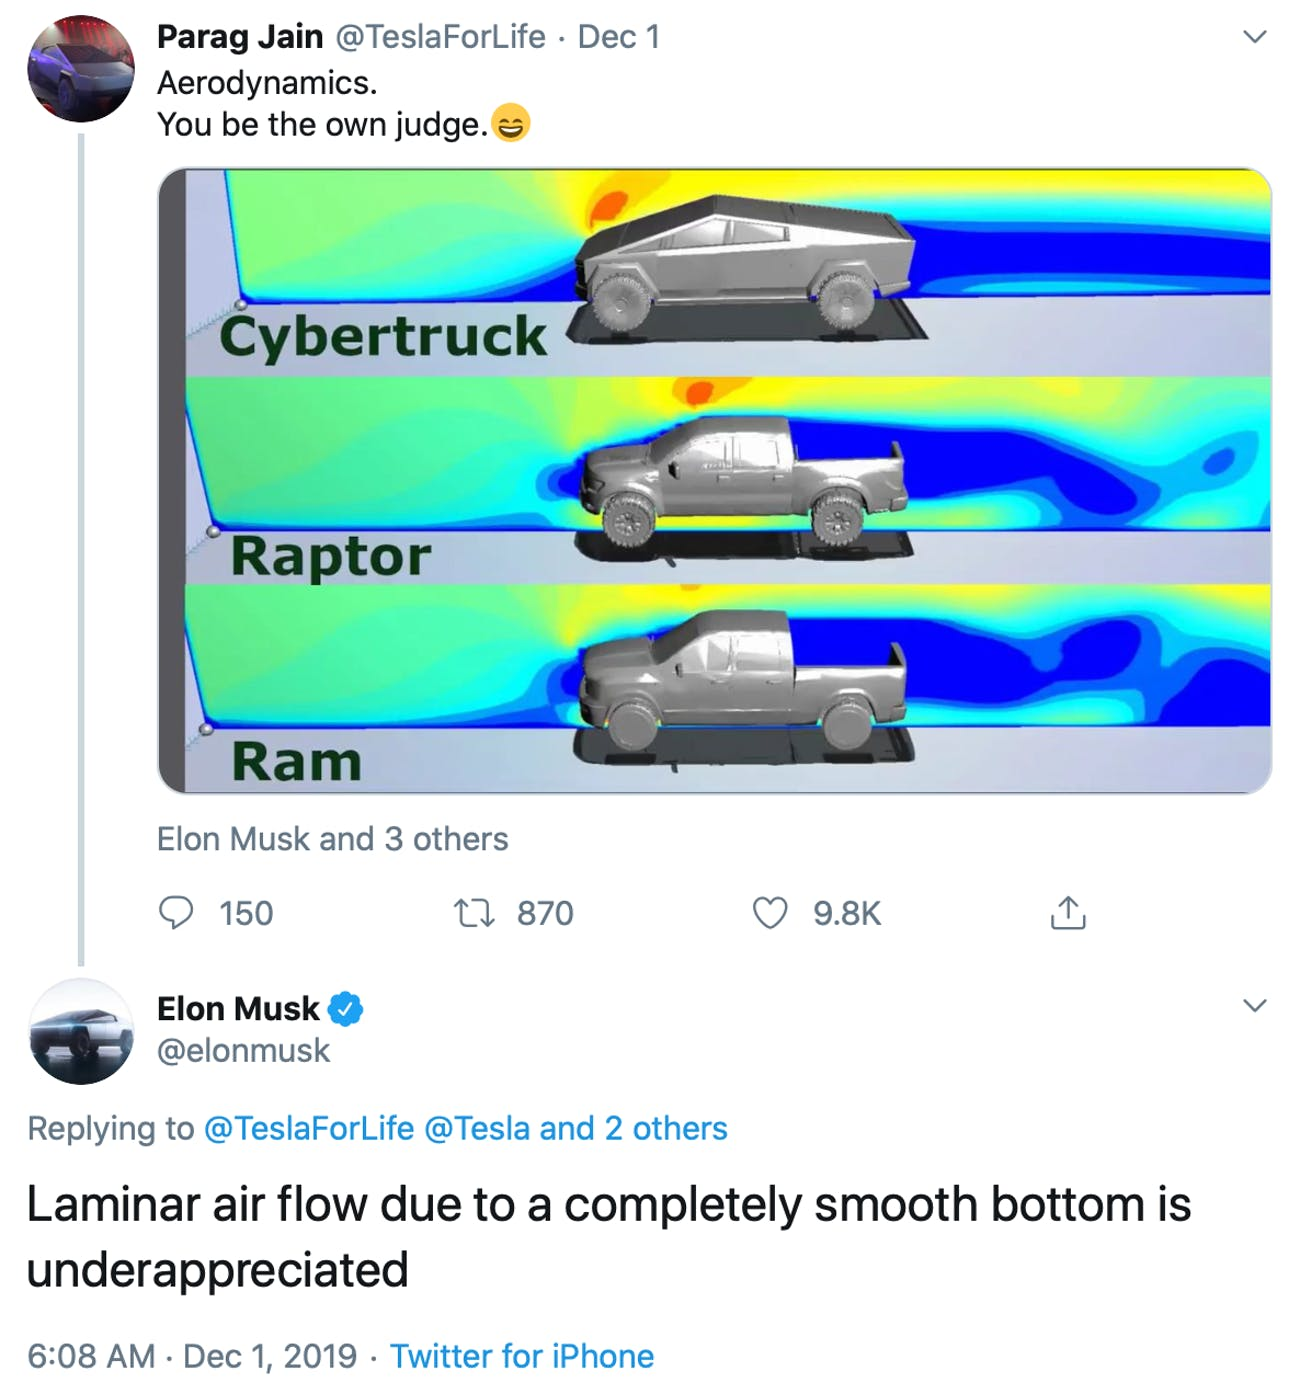 The analysis of the Tesla Cybertruck versus other cars.